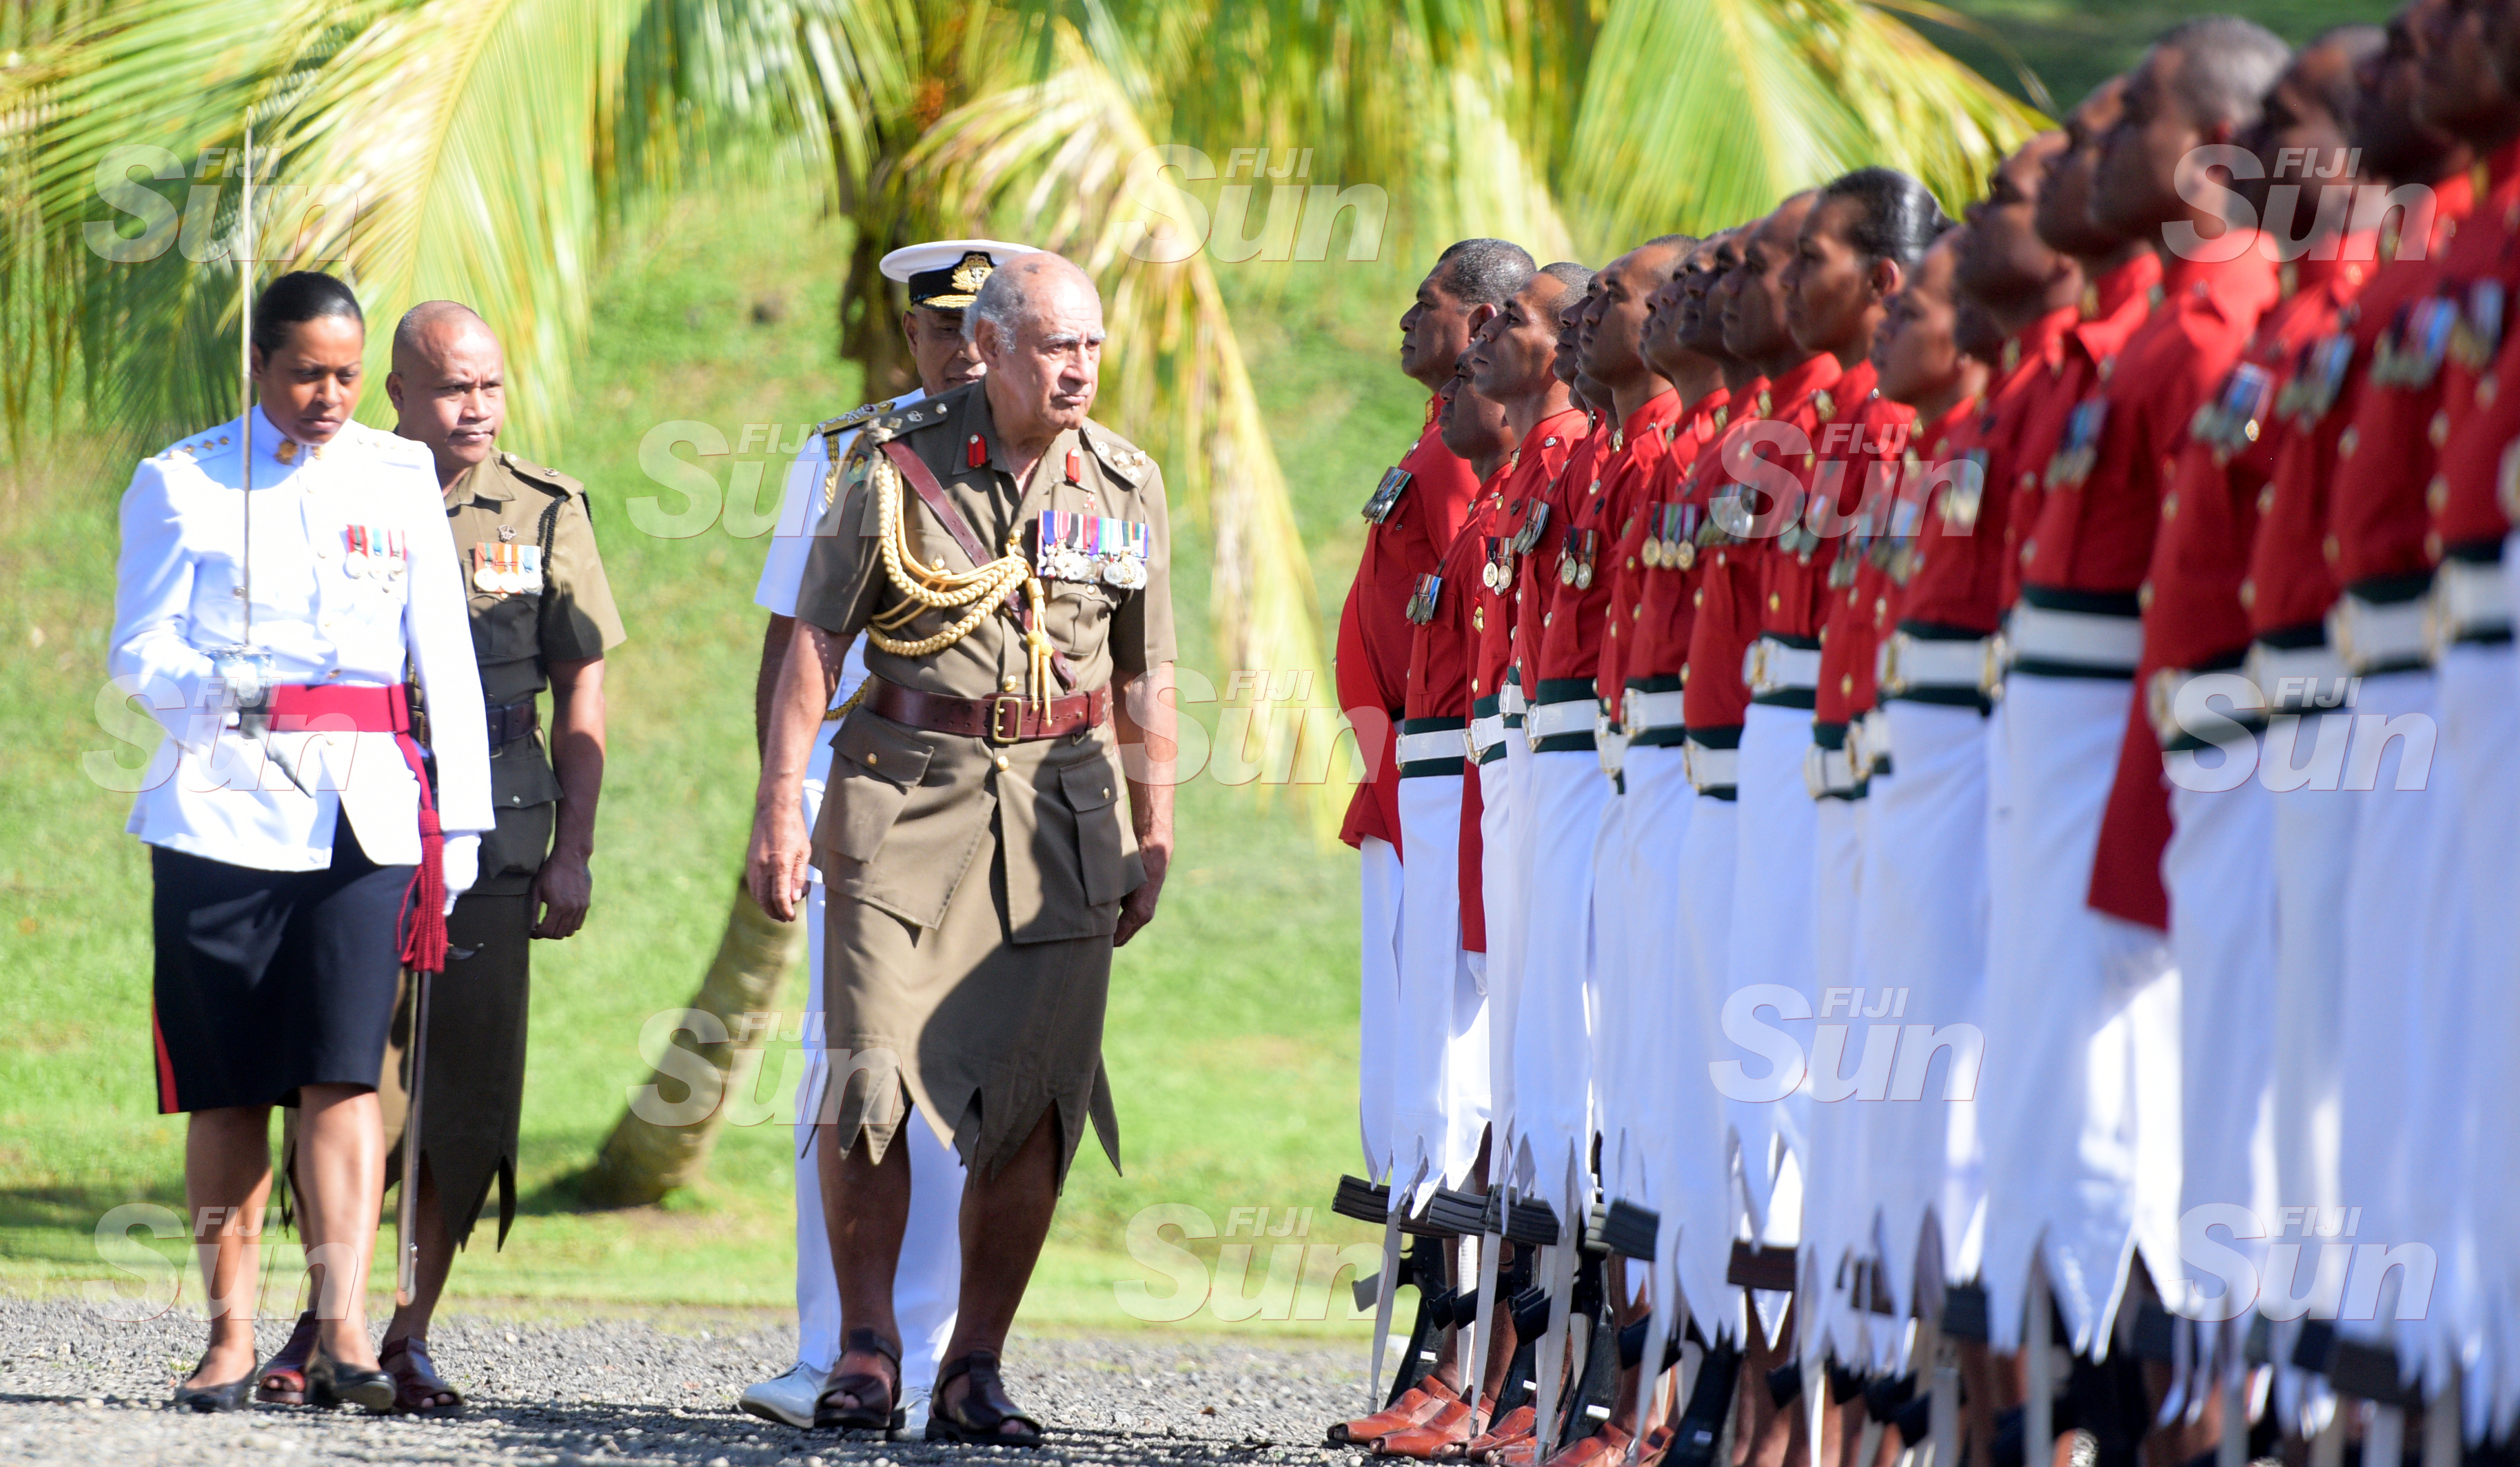 Brigadier General (Retired) Ratu Epeli Nailatikau inspect the 50 men regimental guard of honour at Queen Elizabeth Barracks during inauguration of the Colonel of the Regiment on July 21, 2020. Photo: Ronald Kumar.